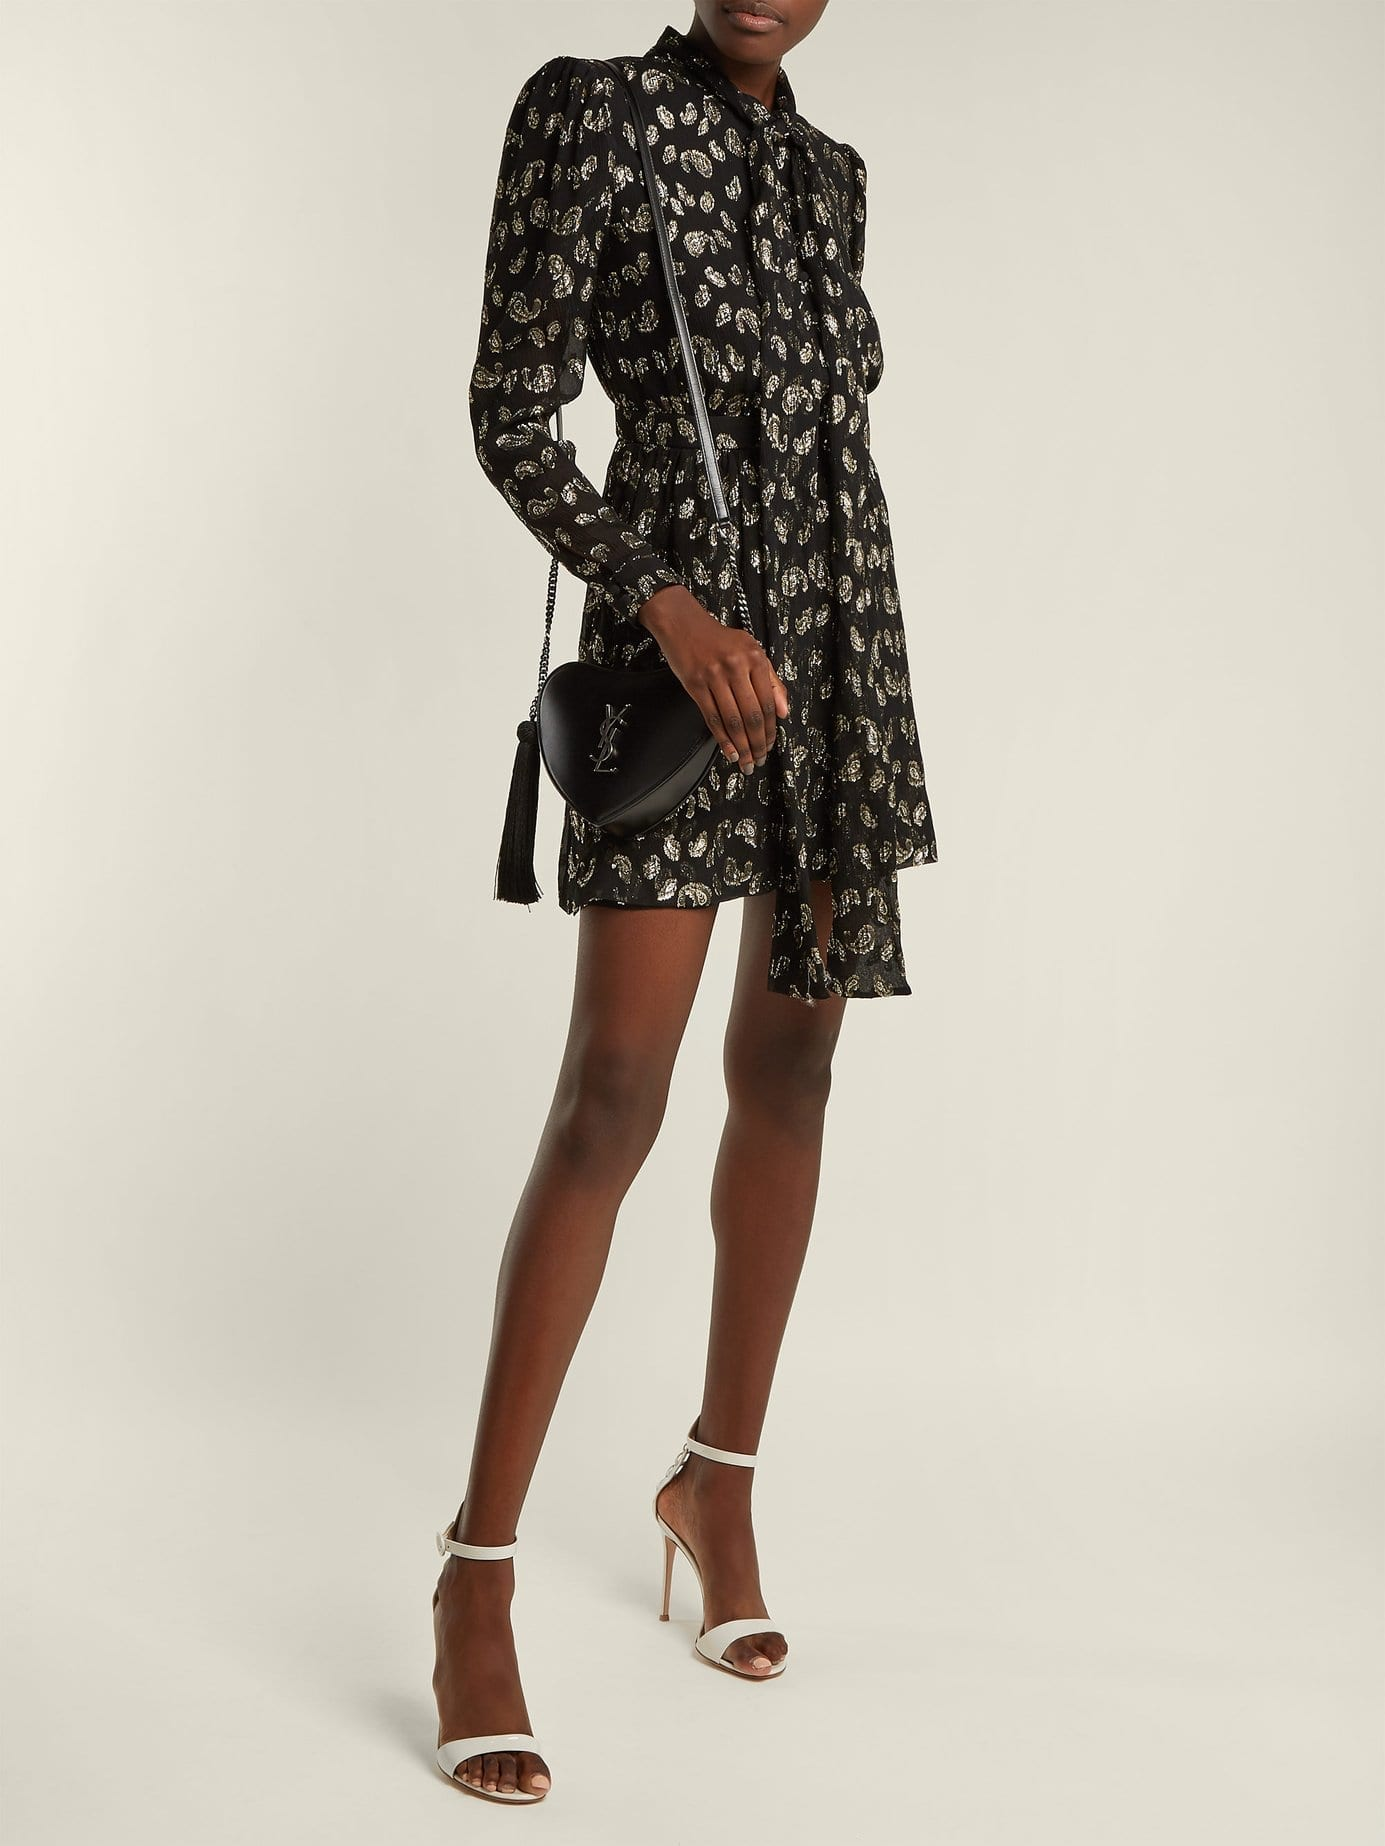 SAINT LAURENT Paisley Silk Blend Fil Coupé Black Dress